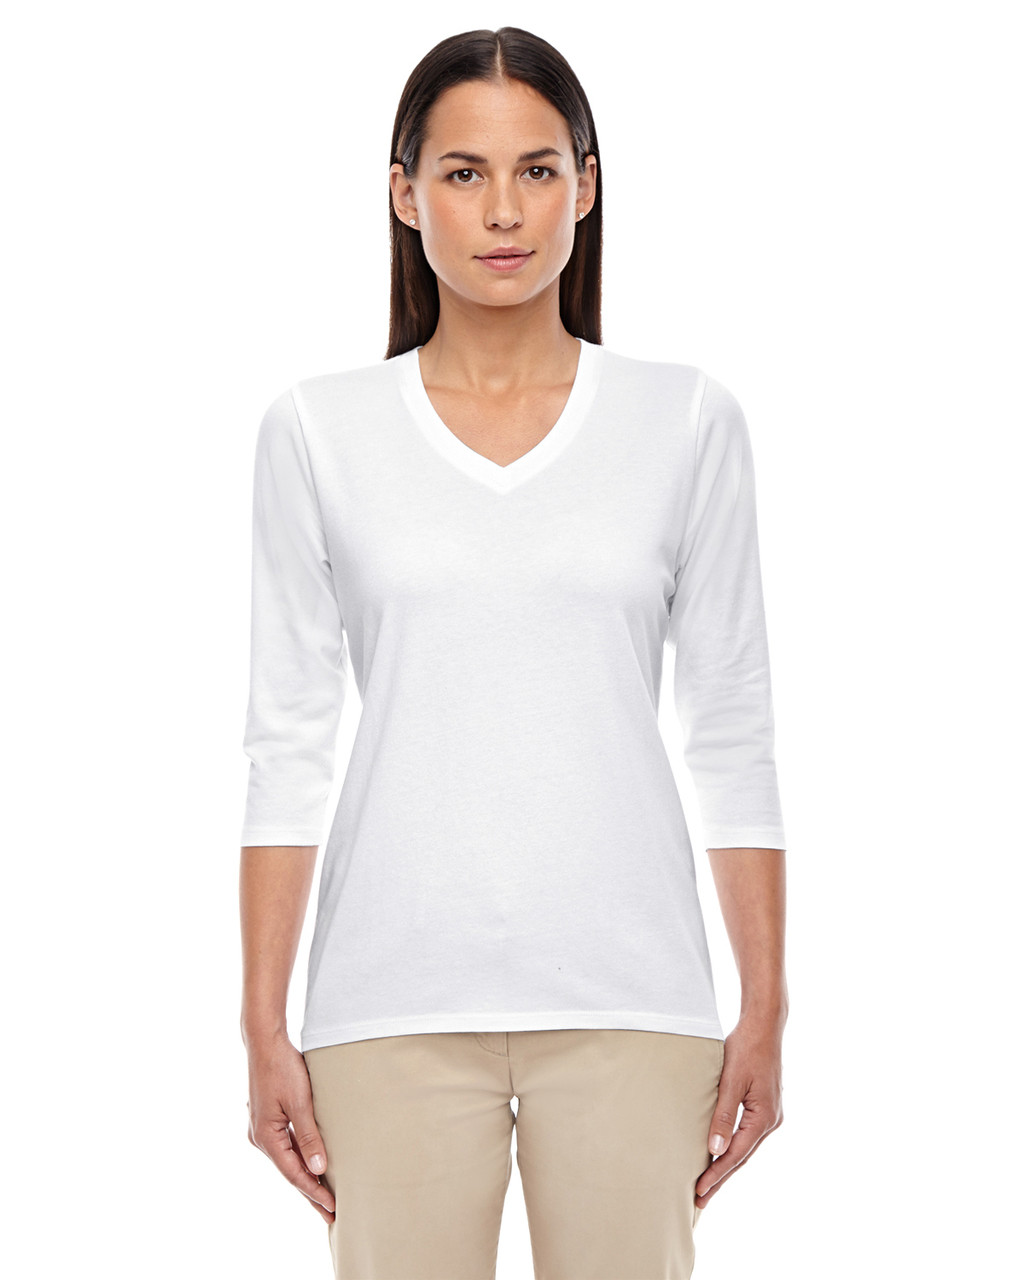 White - DP184W Devon & Jones Ladies' Perfect Fit Bracelet Length V-Neck Top